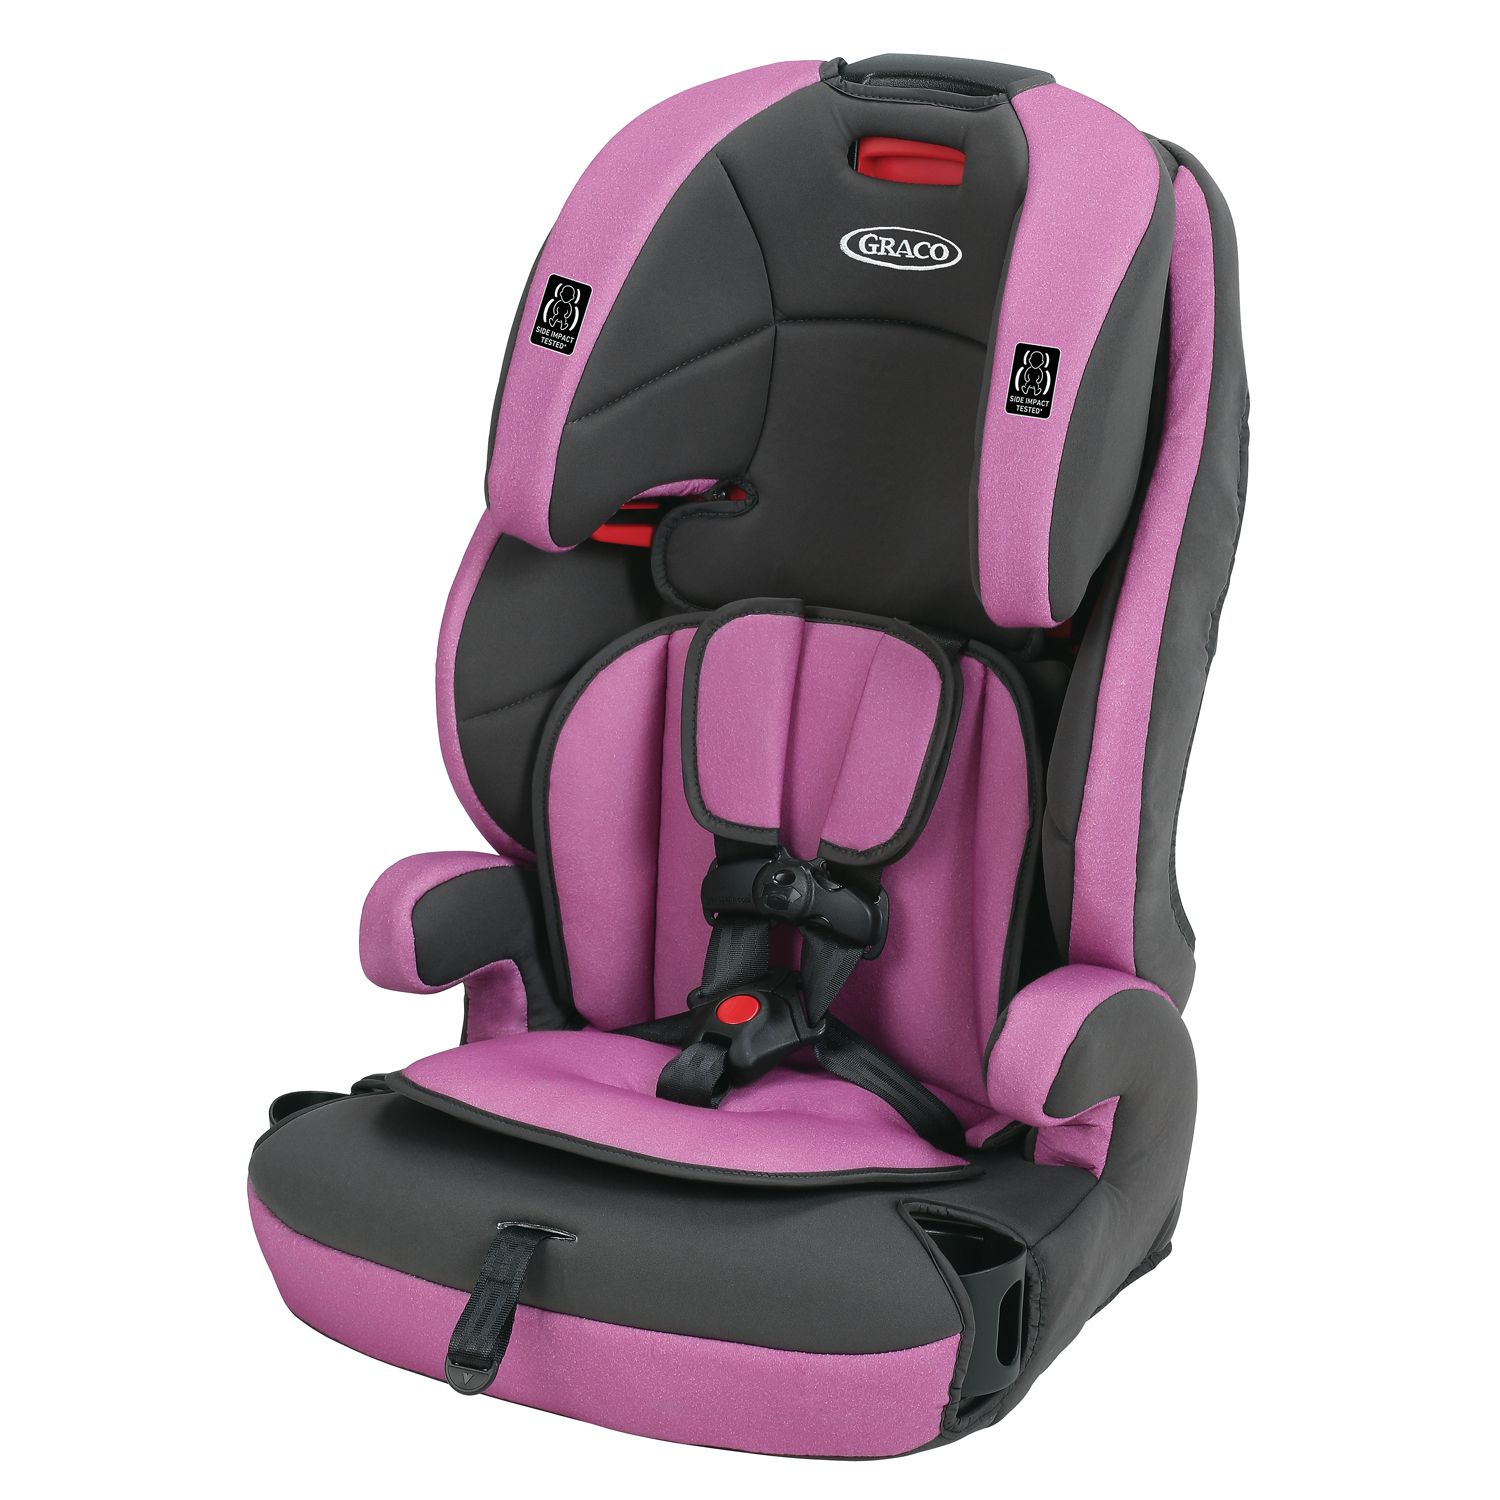 graco tranzitions 3in1 harness booster convertible car seat